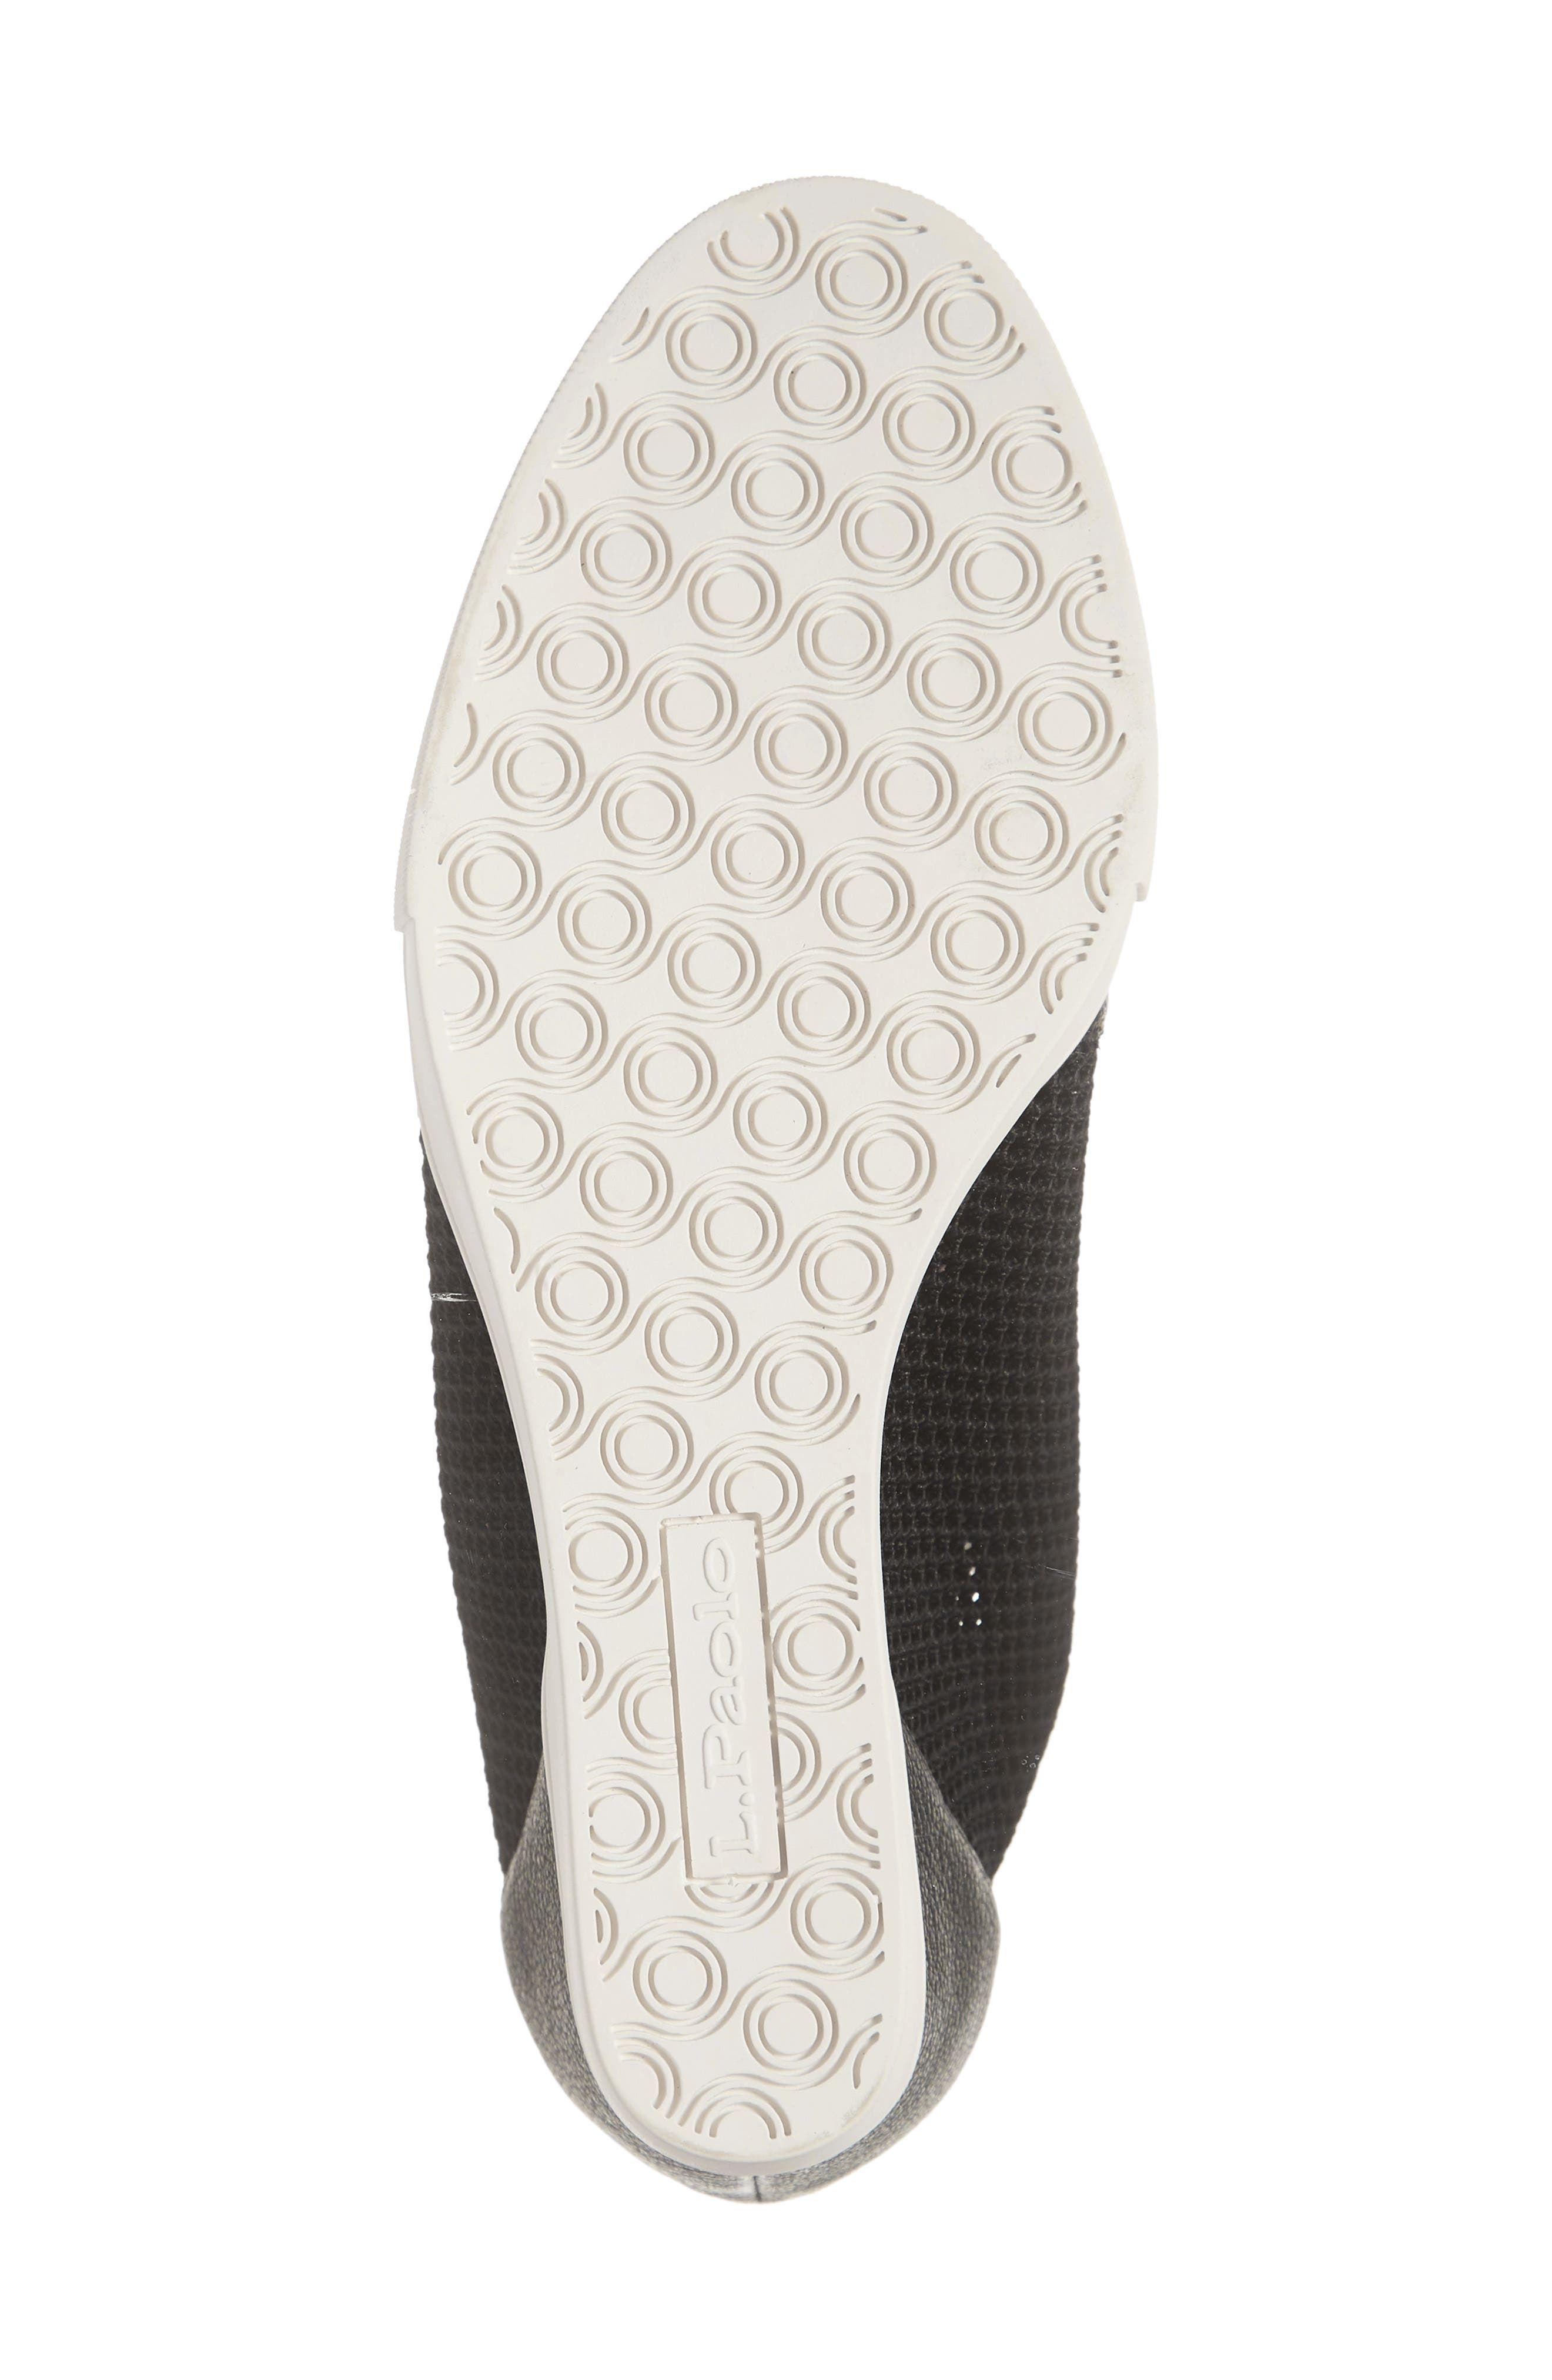 LINEA PAOLO, Finian Mesh Wedge Sneaker Bootie, Alternate thumbnail 6, color, BLACK LEATHER